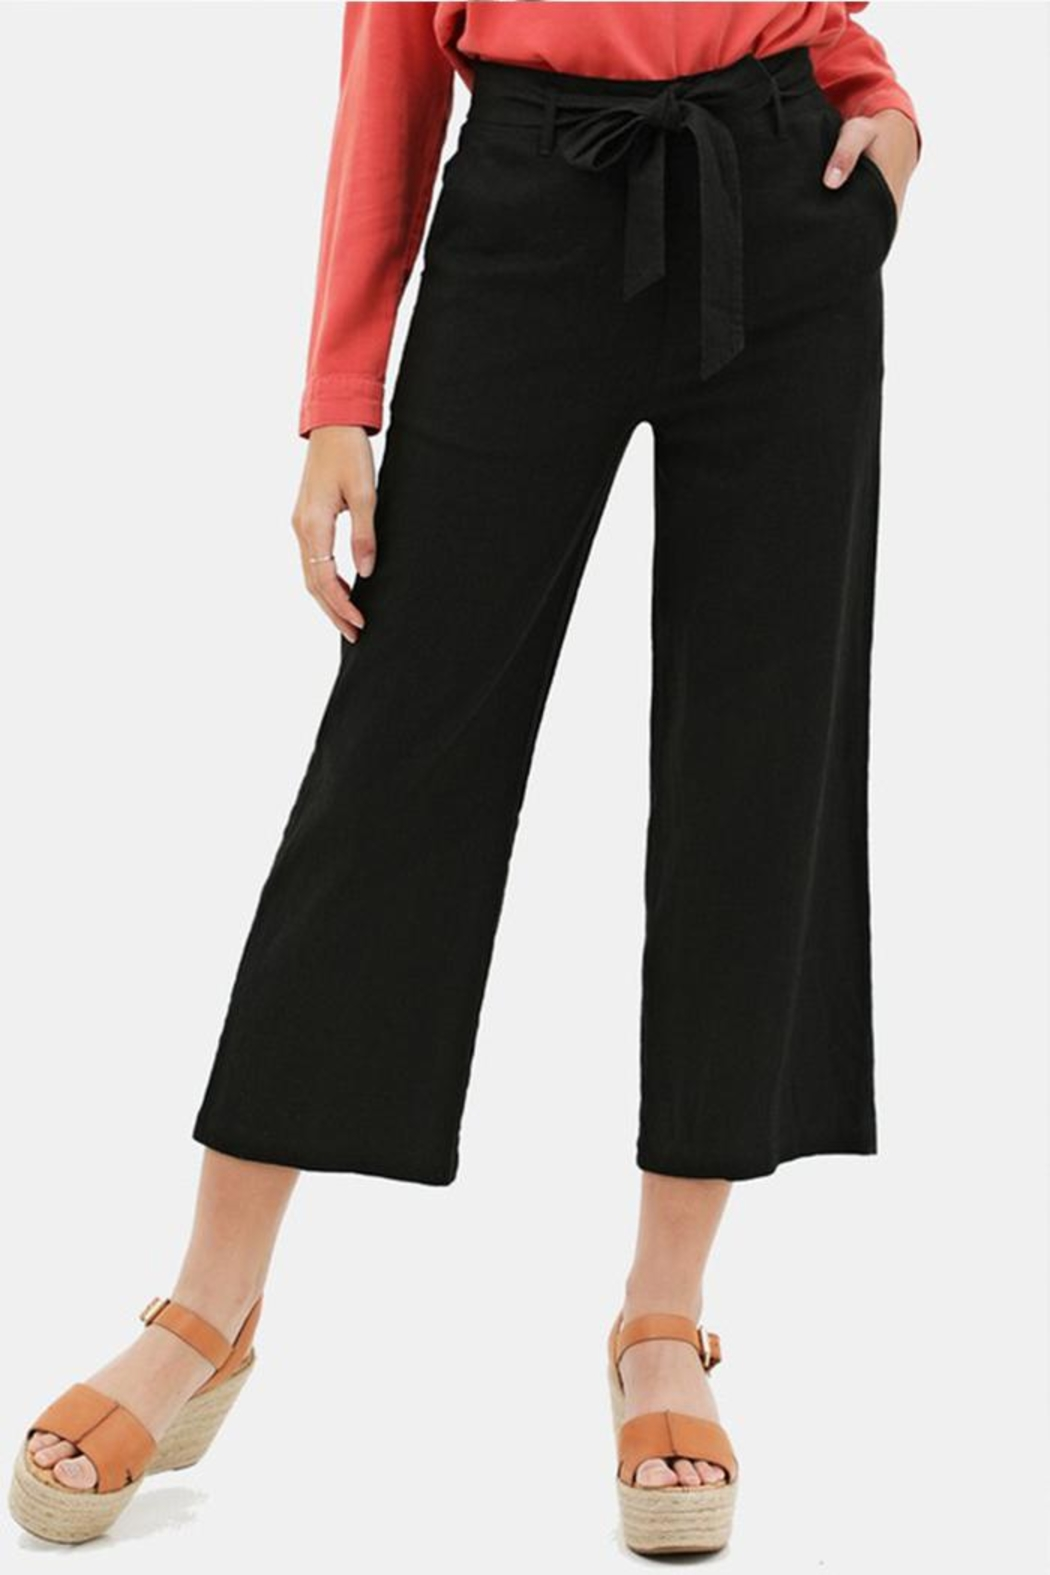 Love Tree Cropped Tie Pants - Front Cropped Image